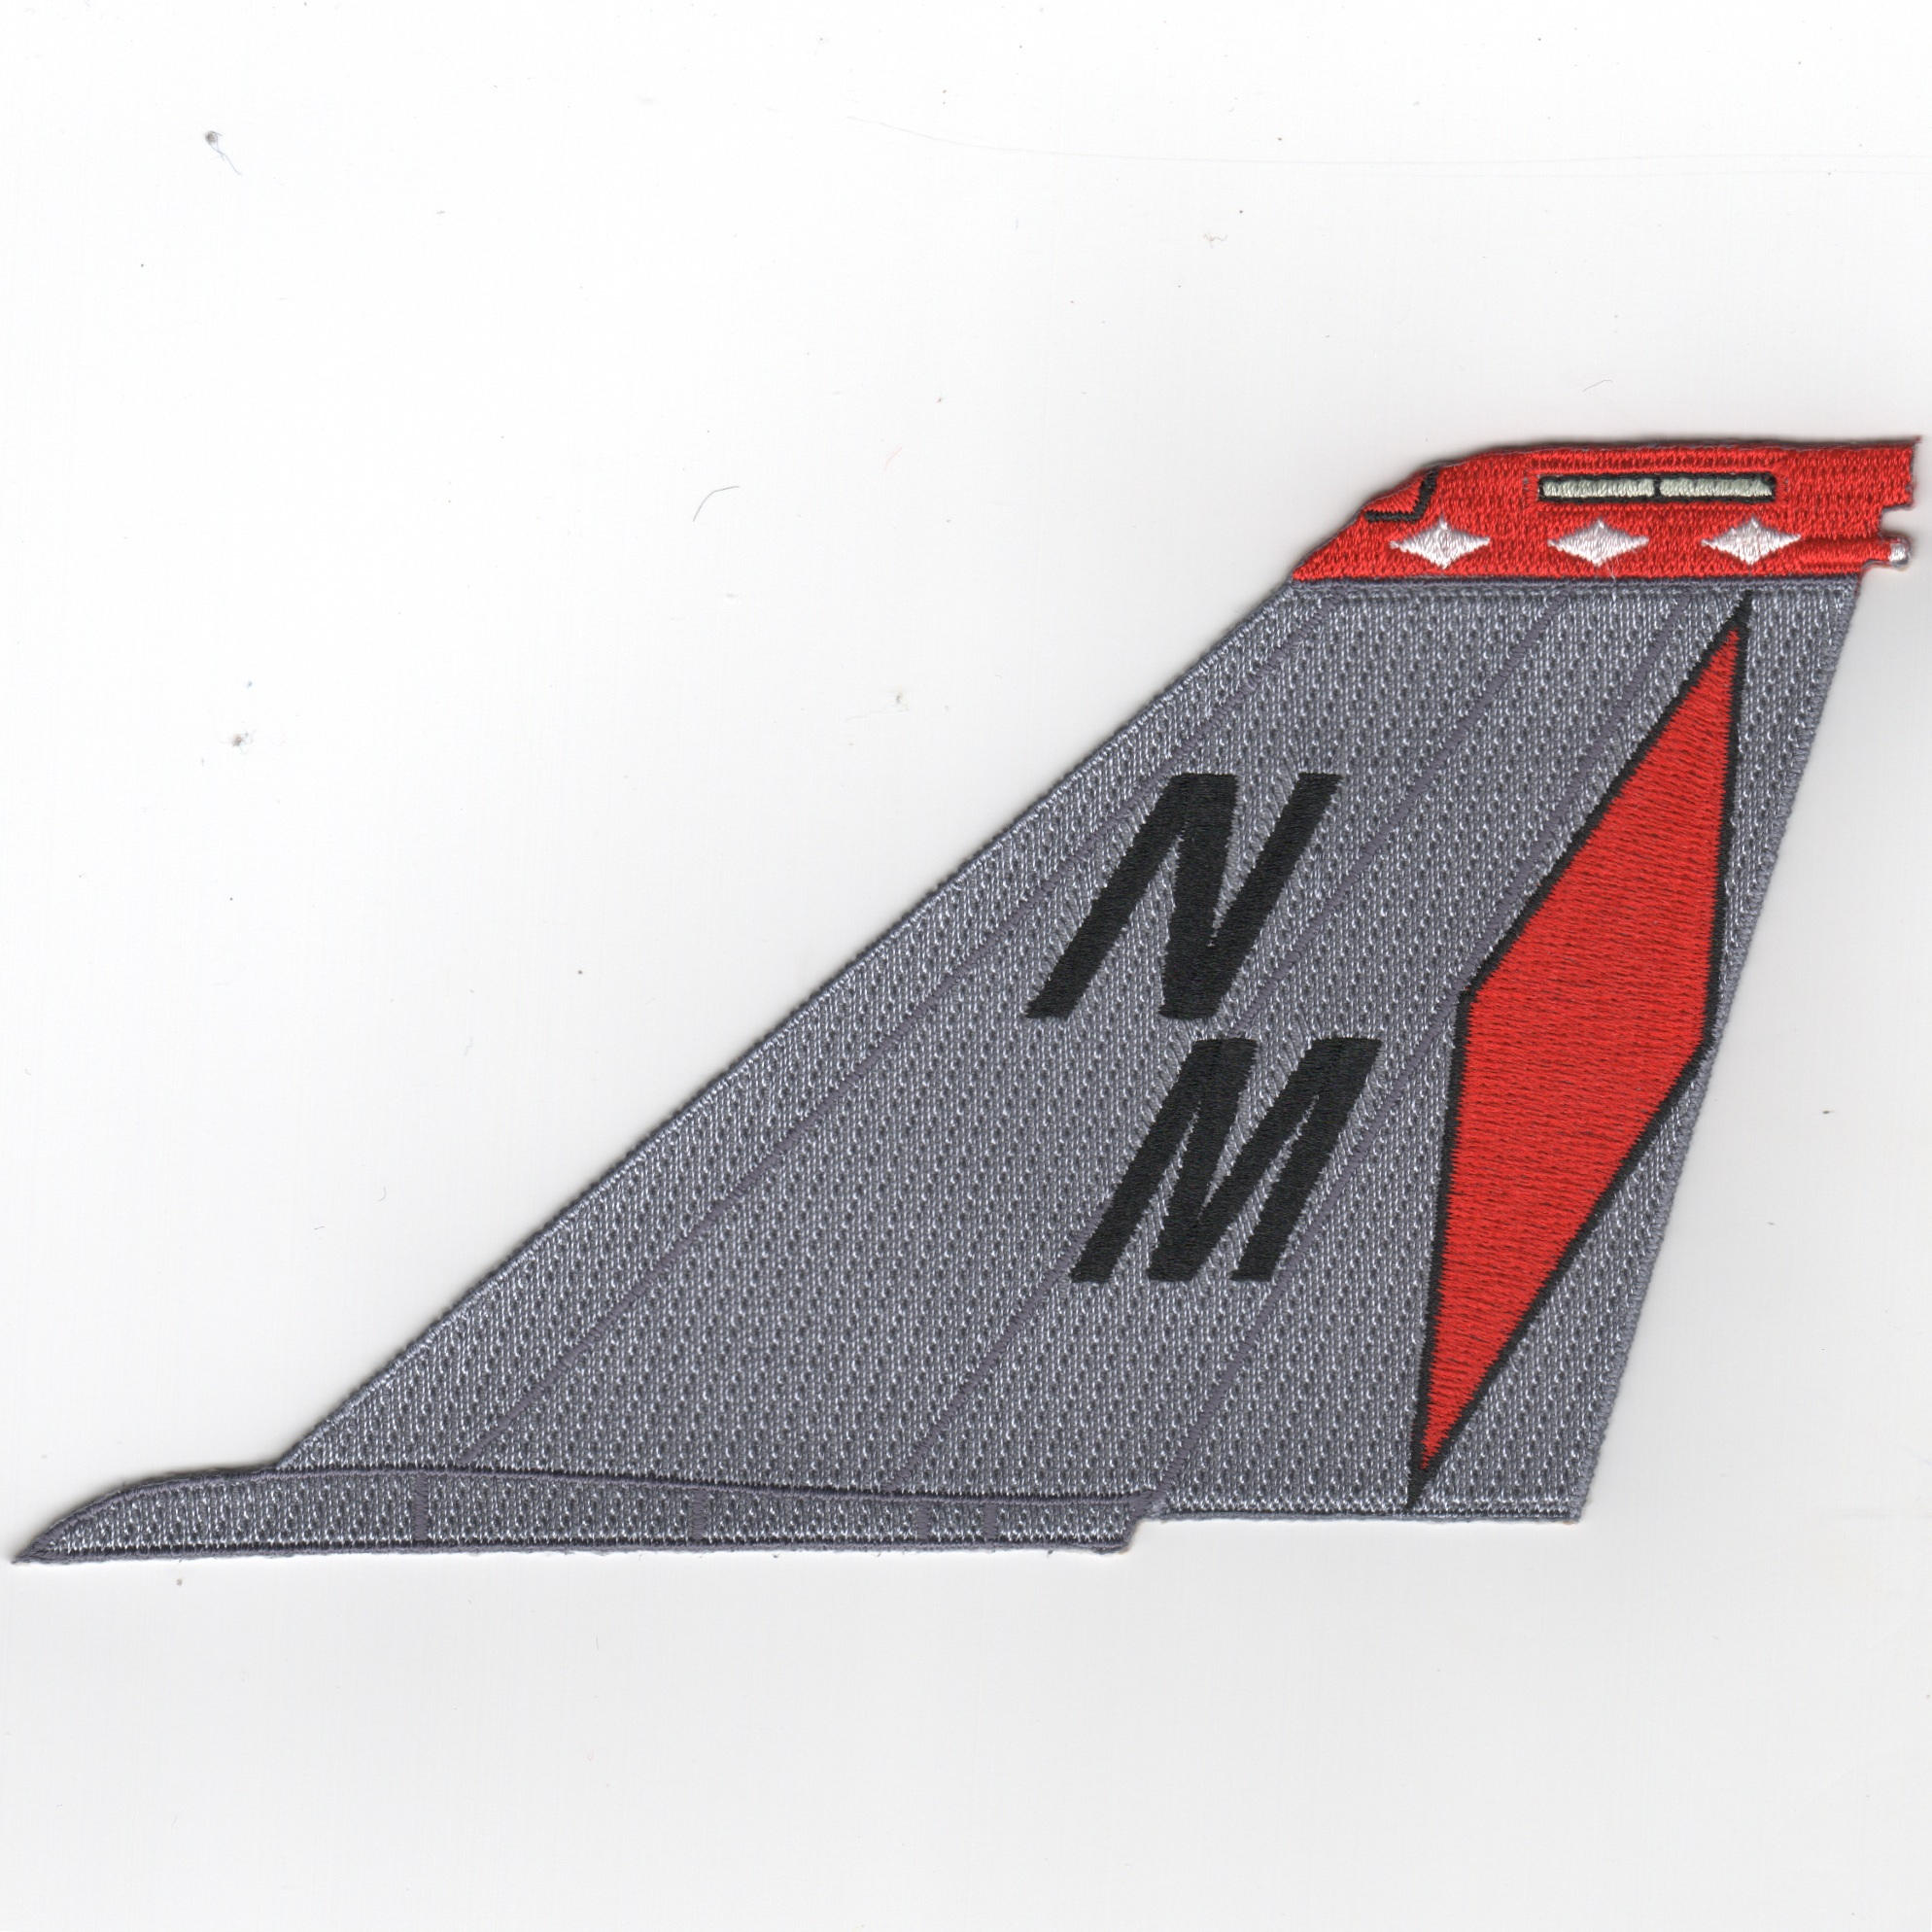 VF-191 F-14 Tailfin (No Text/Red Diamond)